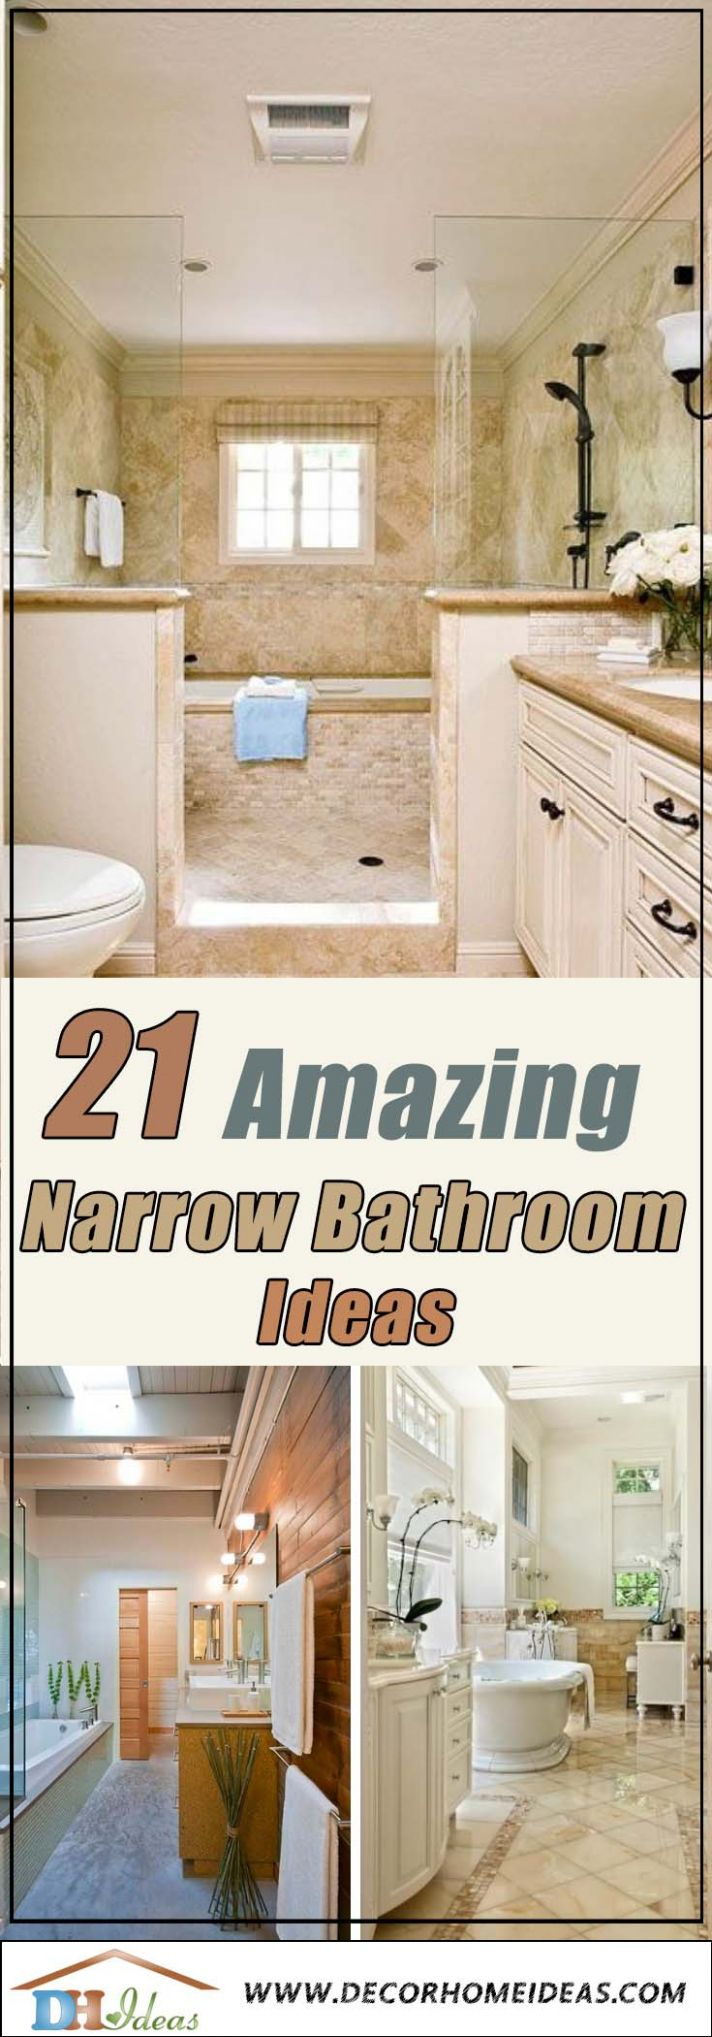 8 Amazing Narrow Bathroom Ideas - bathroom ideas long and narrow